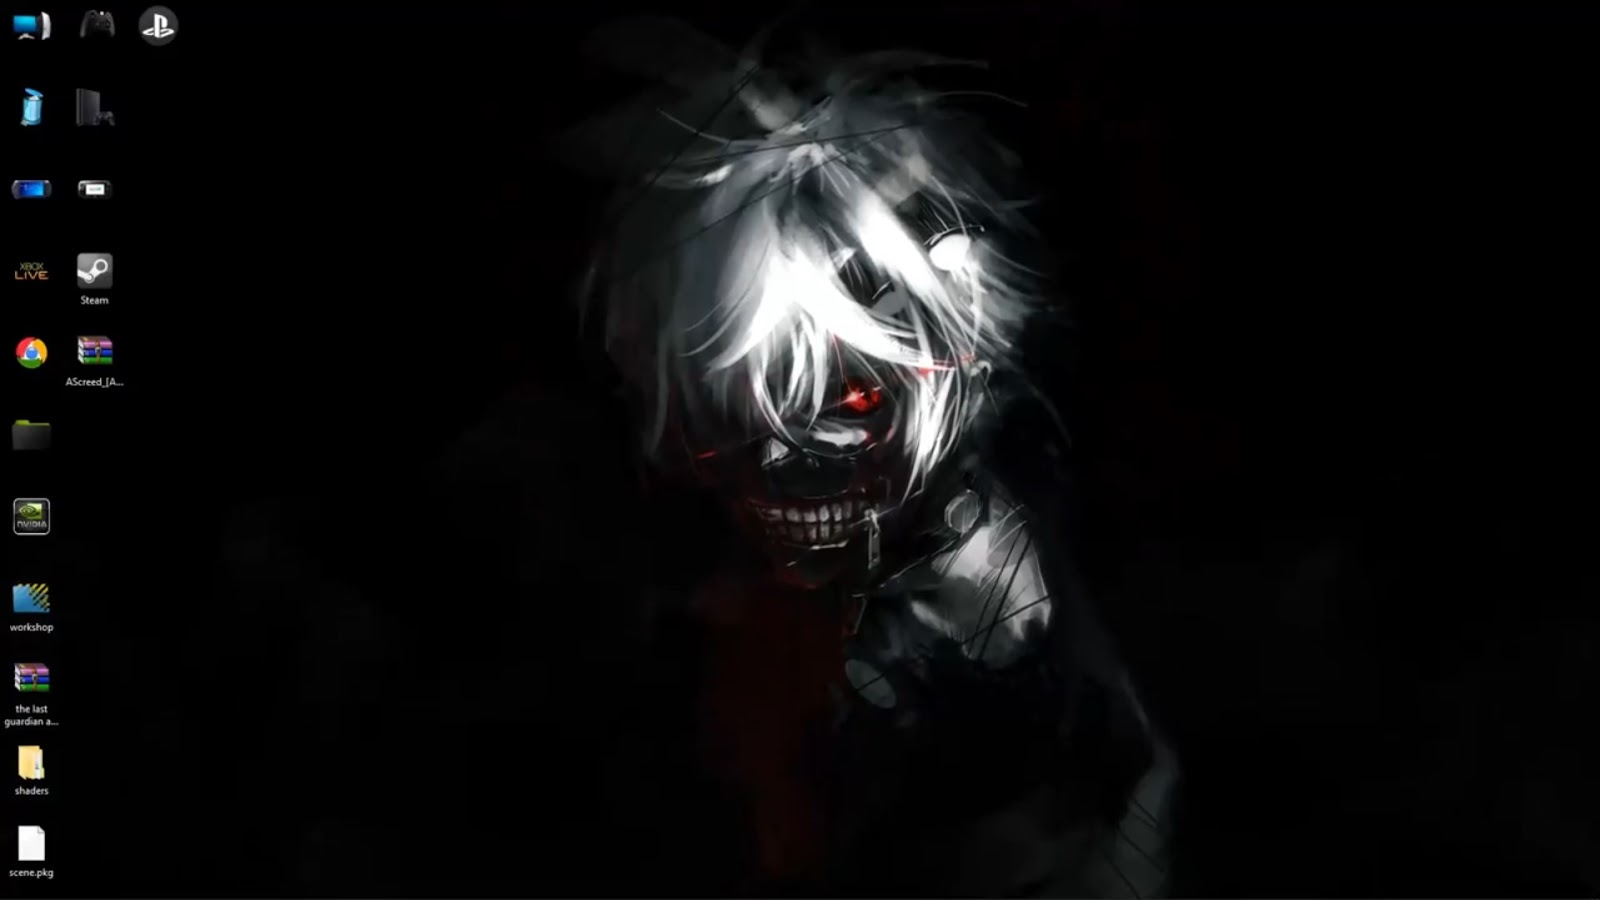 Wallpaper of Kaneki KenTokyo Ghoul background HD